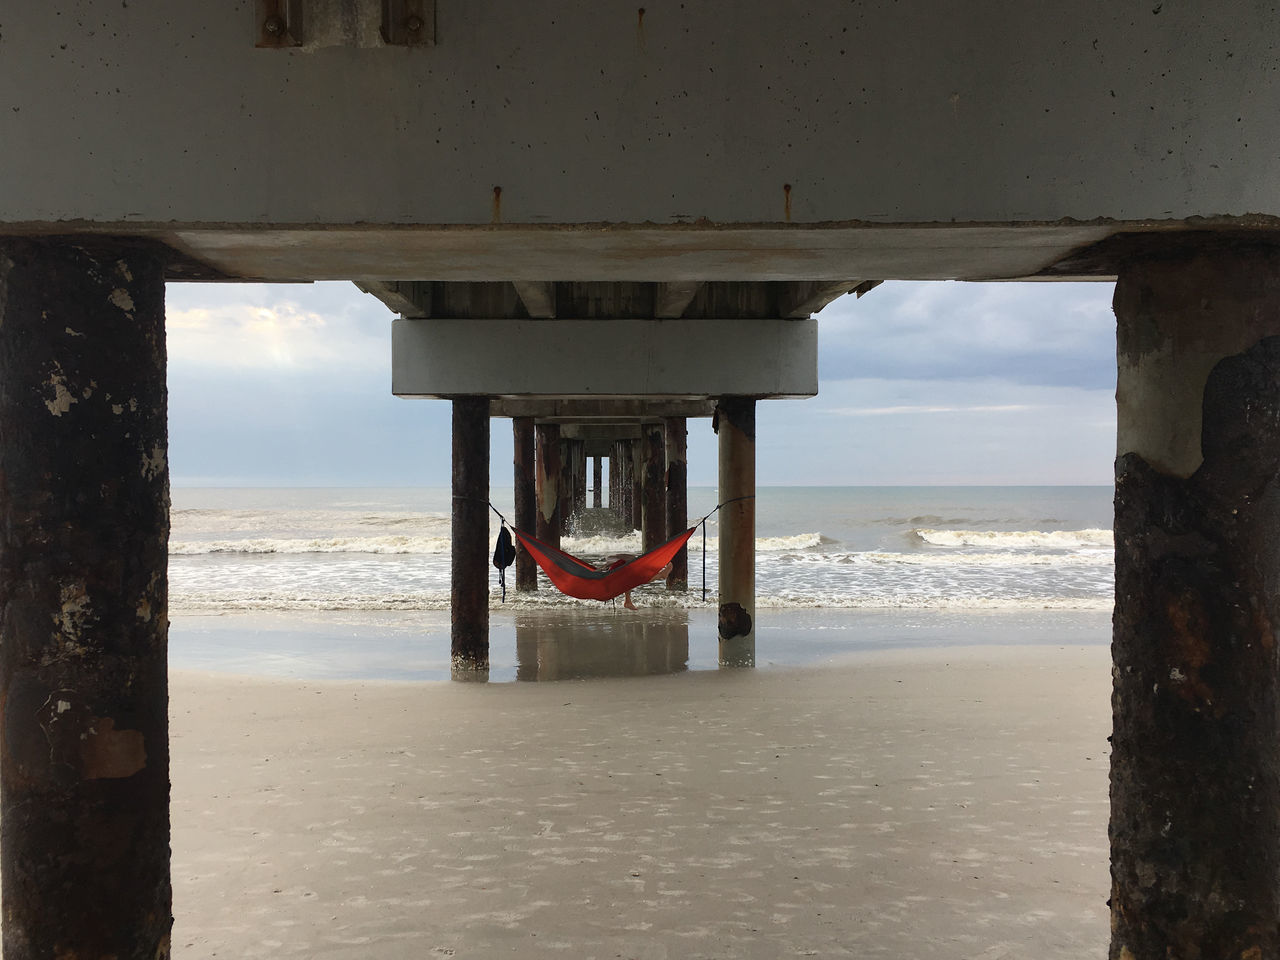 Napping under pier Architecture Beach Beauty In Nature Day Hammock Horizon Over Water Nature No People Outdoors Sand Scenics Sea Sky Tranquil Scene Underneath Water